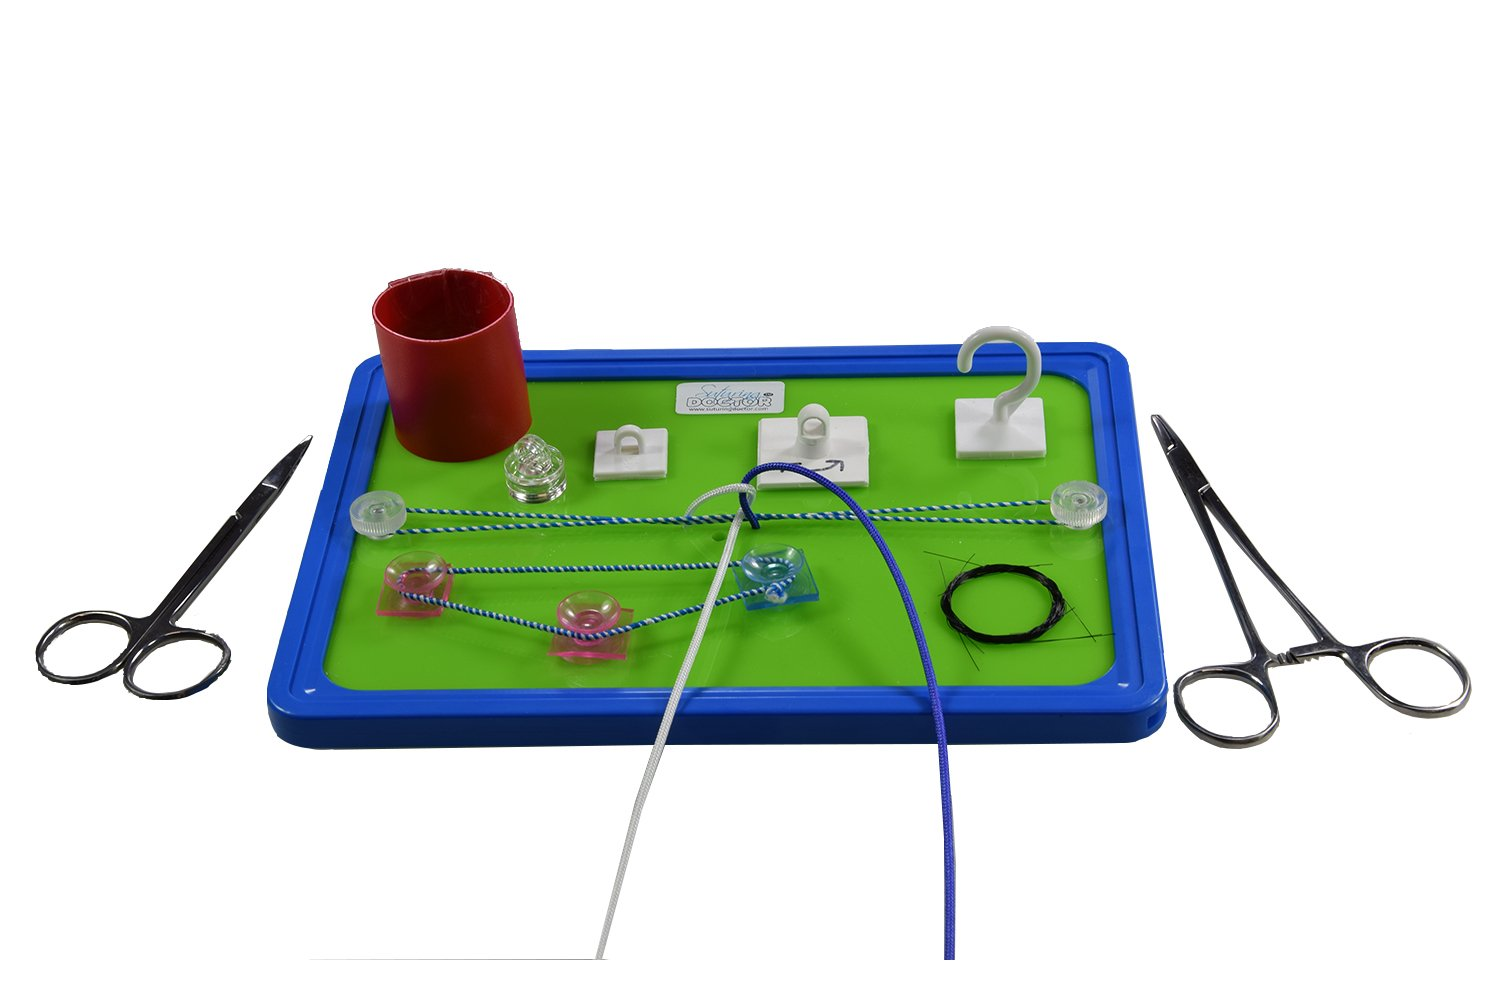 Suture Knot Trainer - Surgical Knot Tying Practice Board Made in UK New Release - Limited Edition - Advanced Techniques